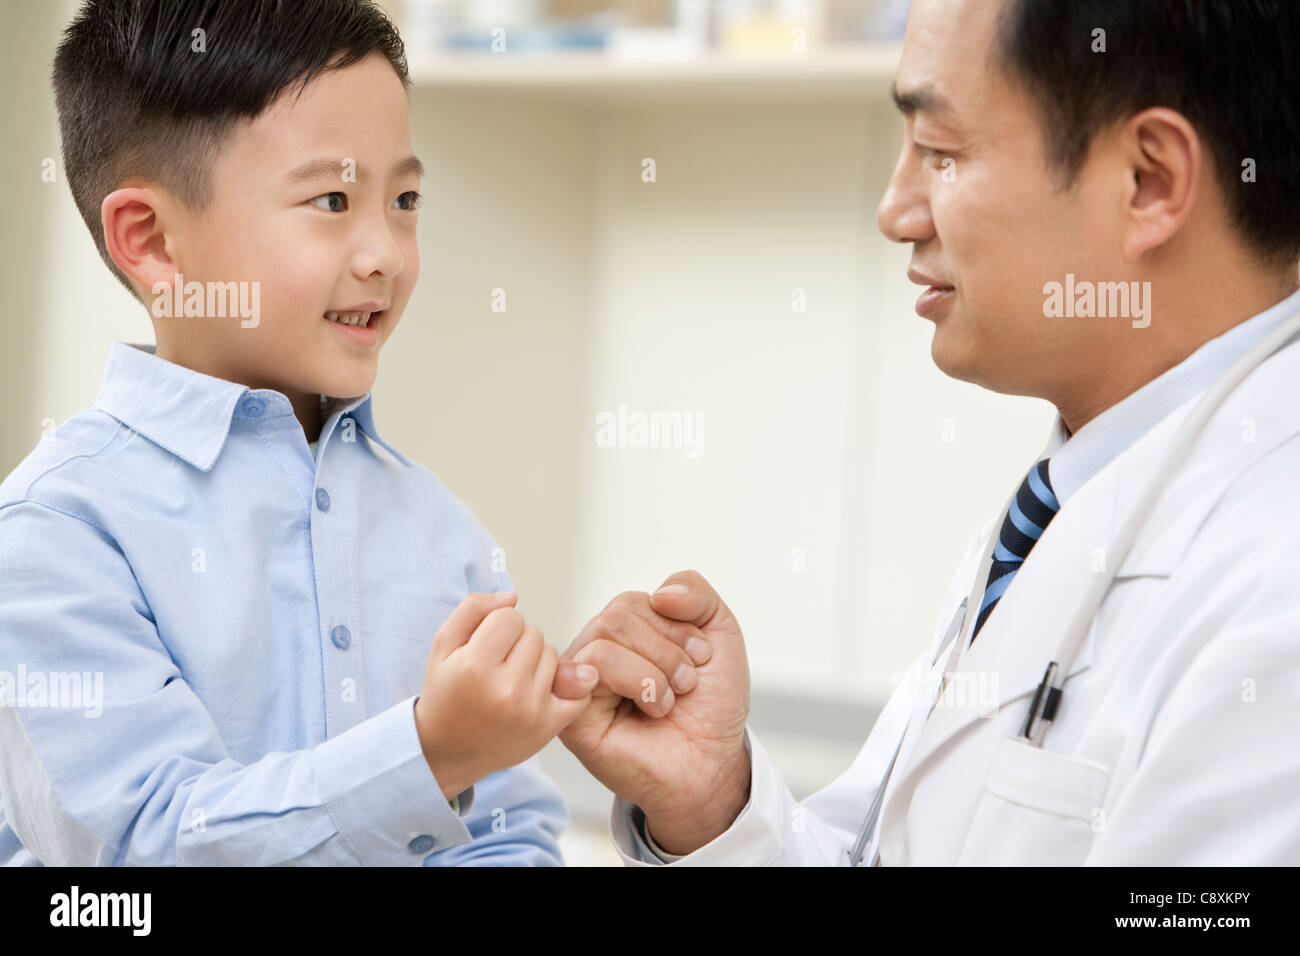 Young Boy and Doctor Pinky Promise - Stock Image